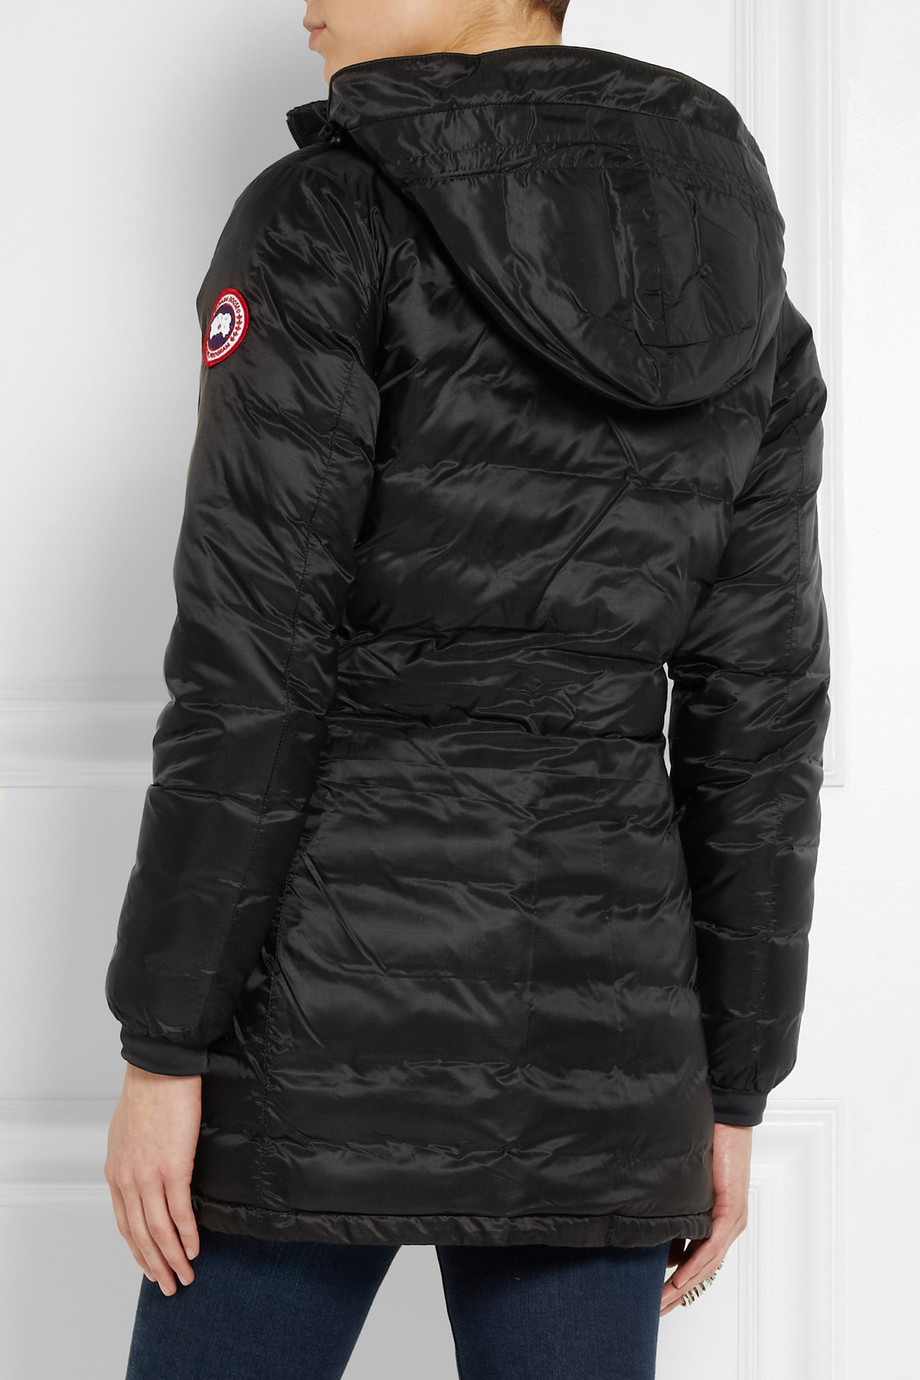 a4bea6f626b4 canada goose women s camp down hooded jacket black